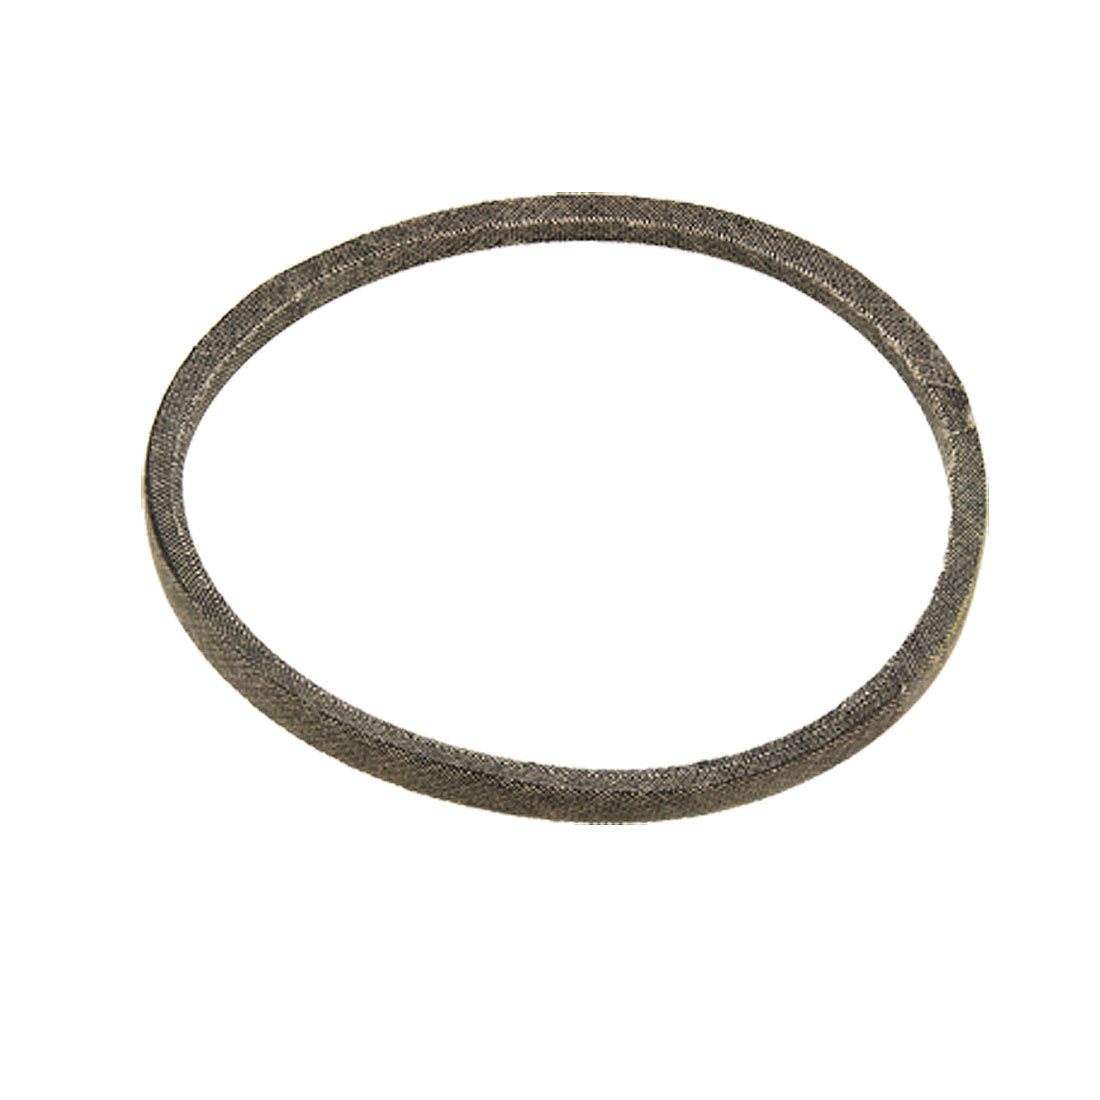 "Washing Machine Washer 17 13/16"" Inner Girth Repairing Rubber V Belt"